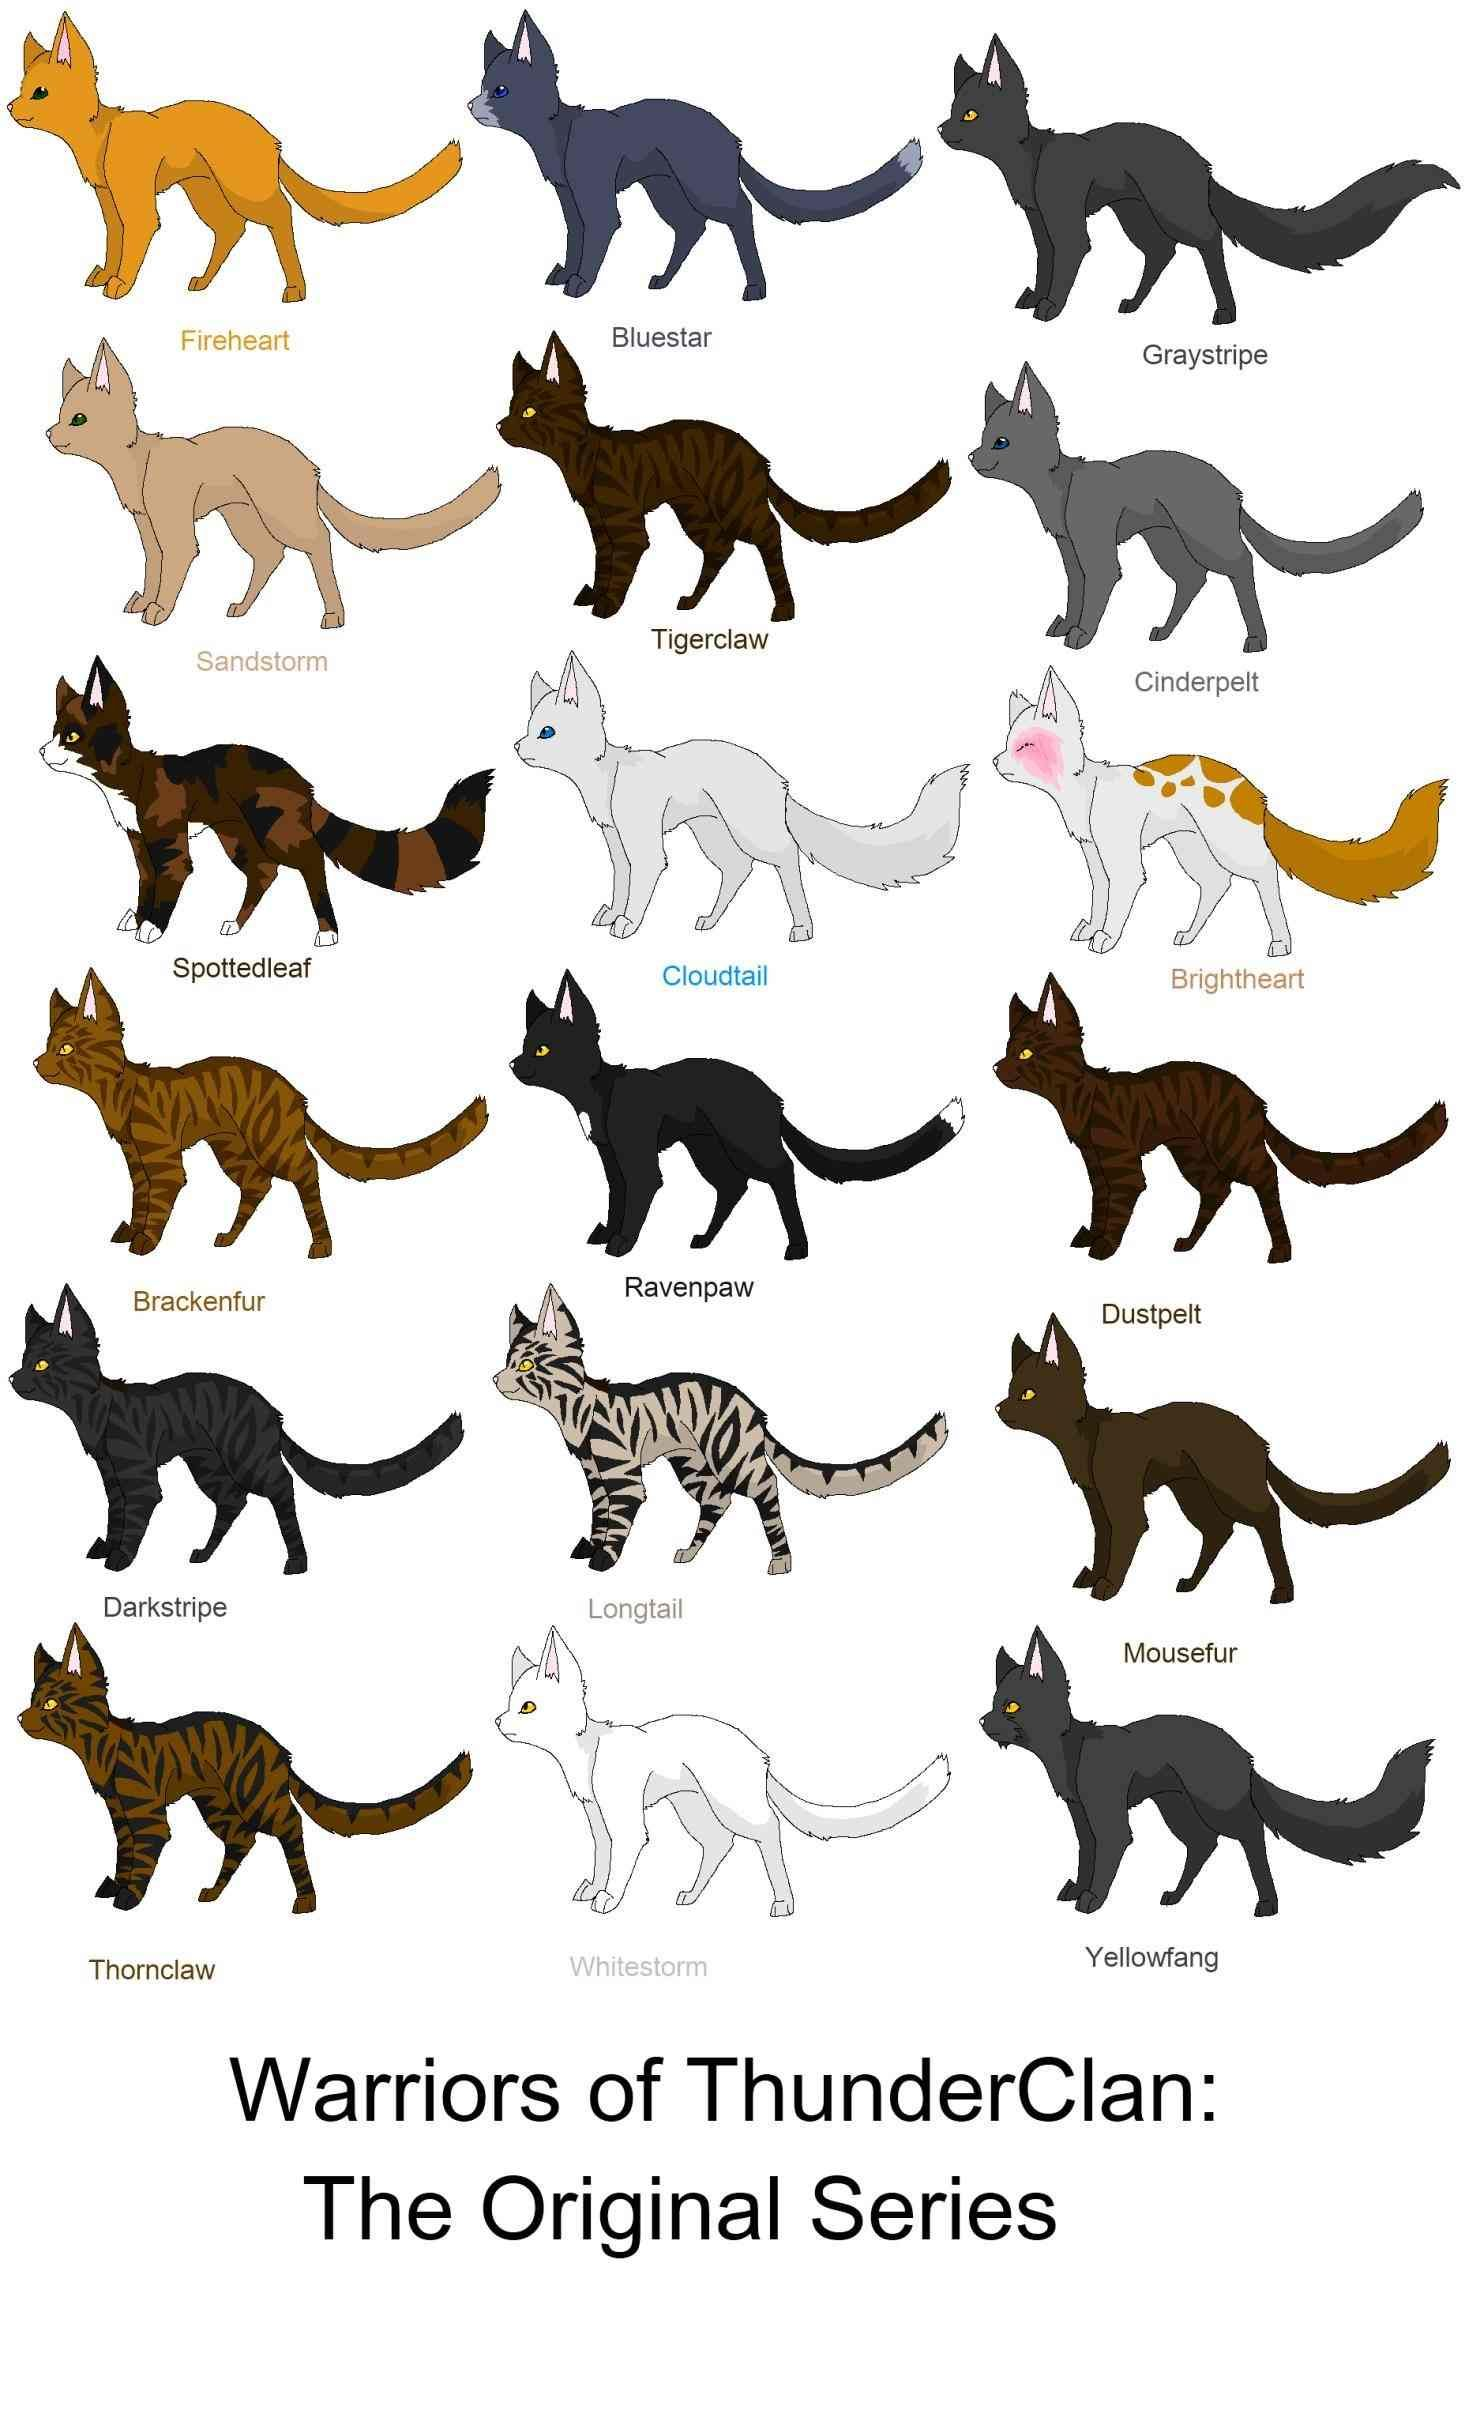 Image For Warrior Cats Thunderclan Cat Names With Images Warrior Cats Fan Art Warrior Cats Books Warrior Cat Names